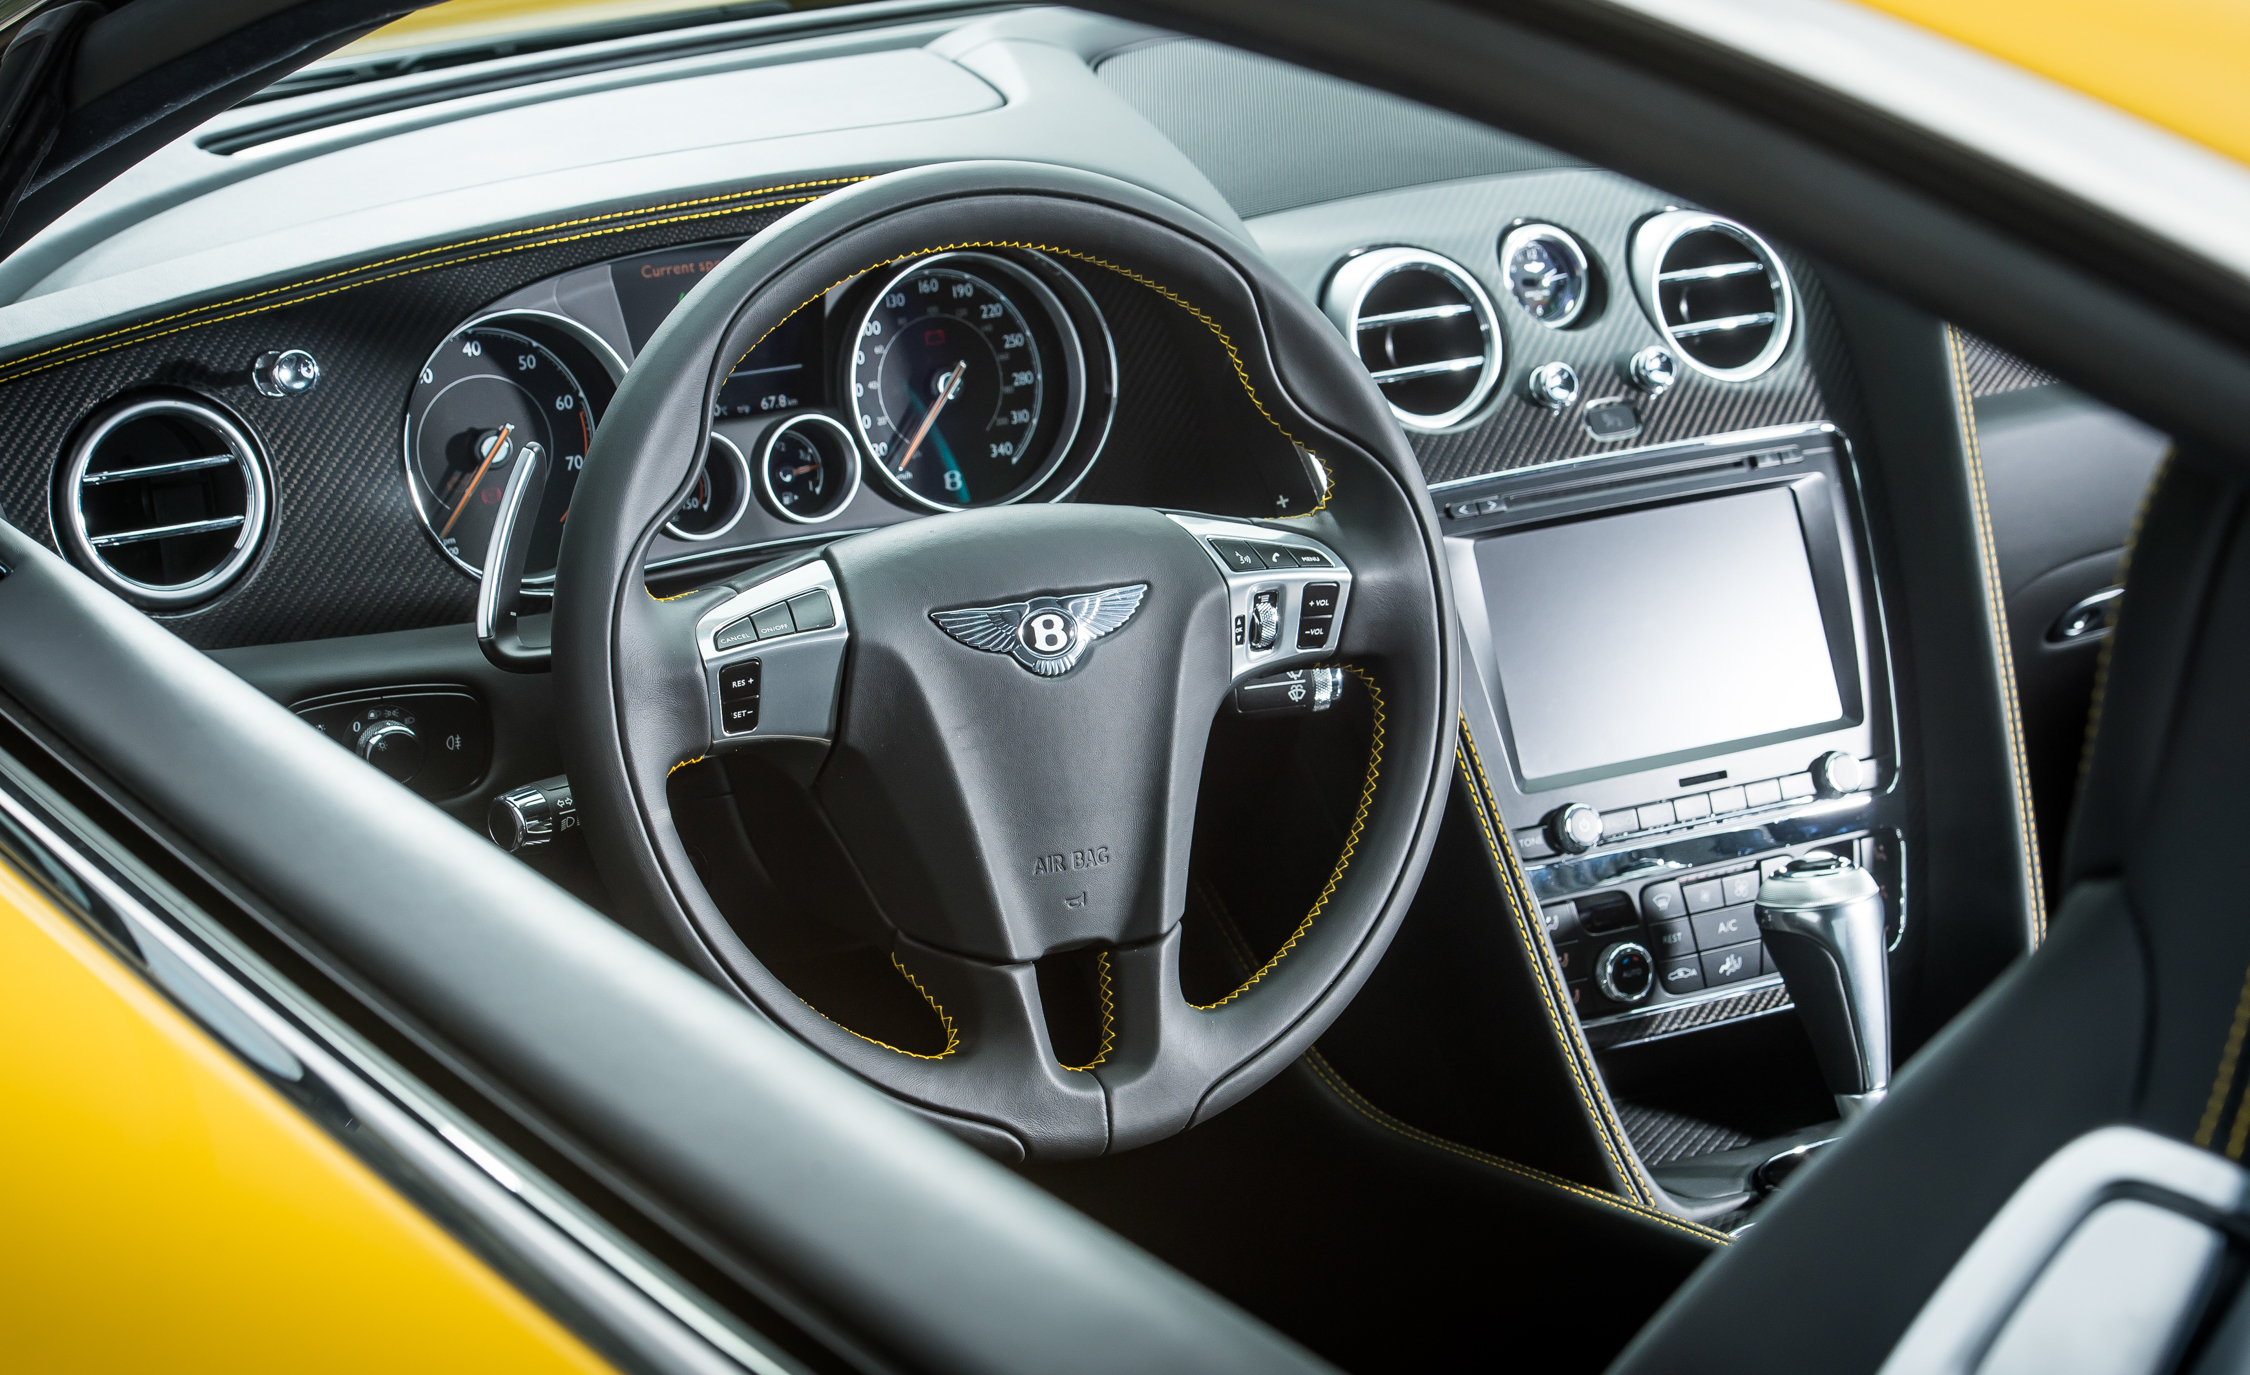 2016 bentley continental gt s interior 8172 cars performance reviews and test drive. Black Bedroom Furniture Sets. Home Design Ideas